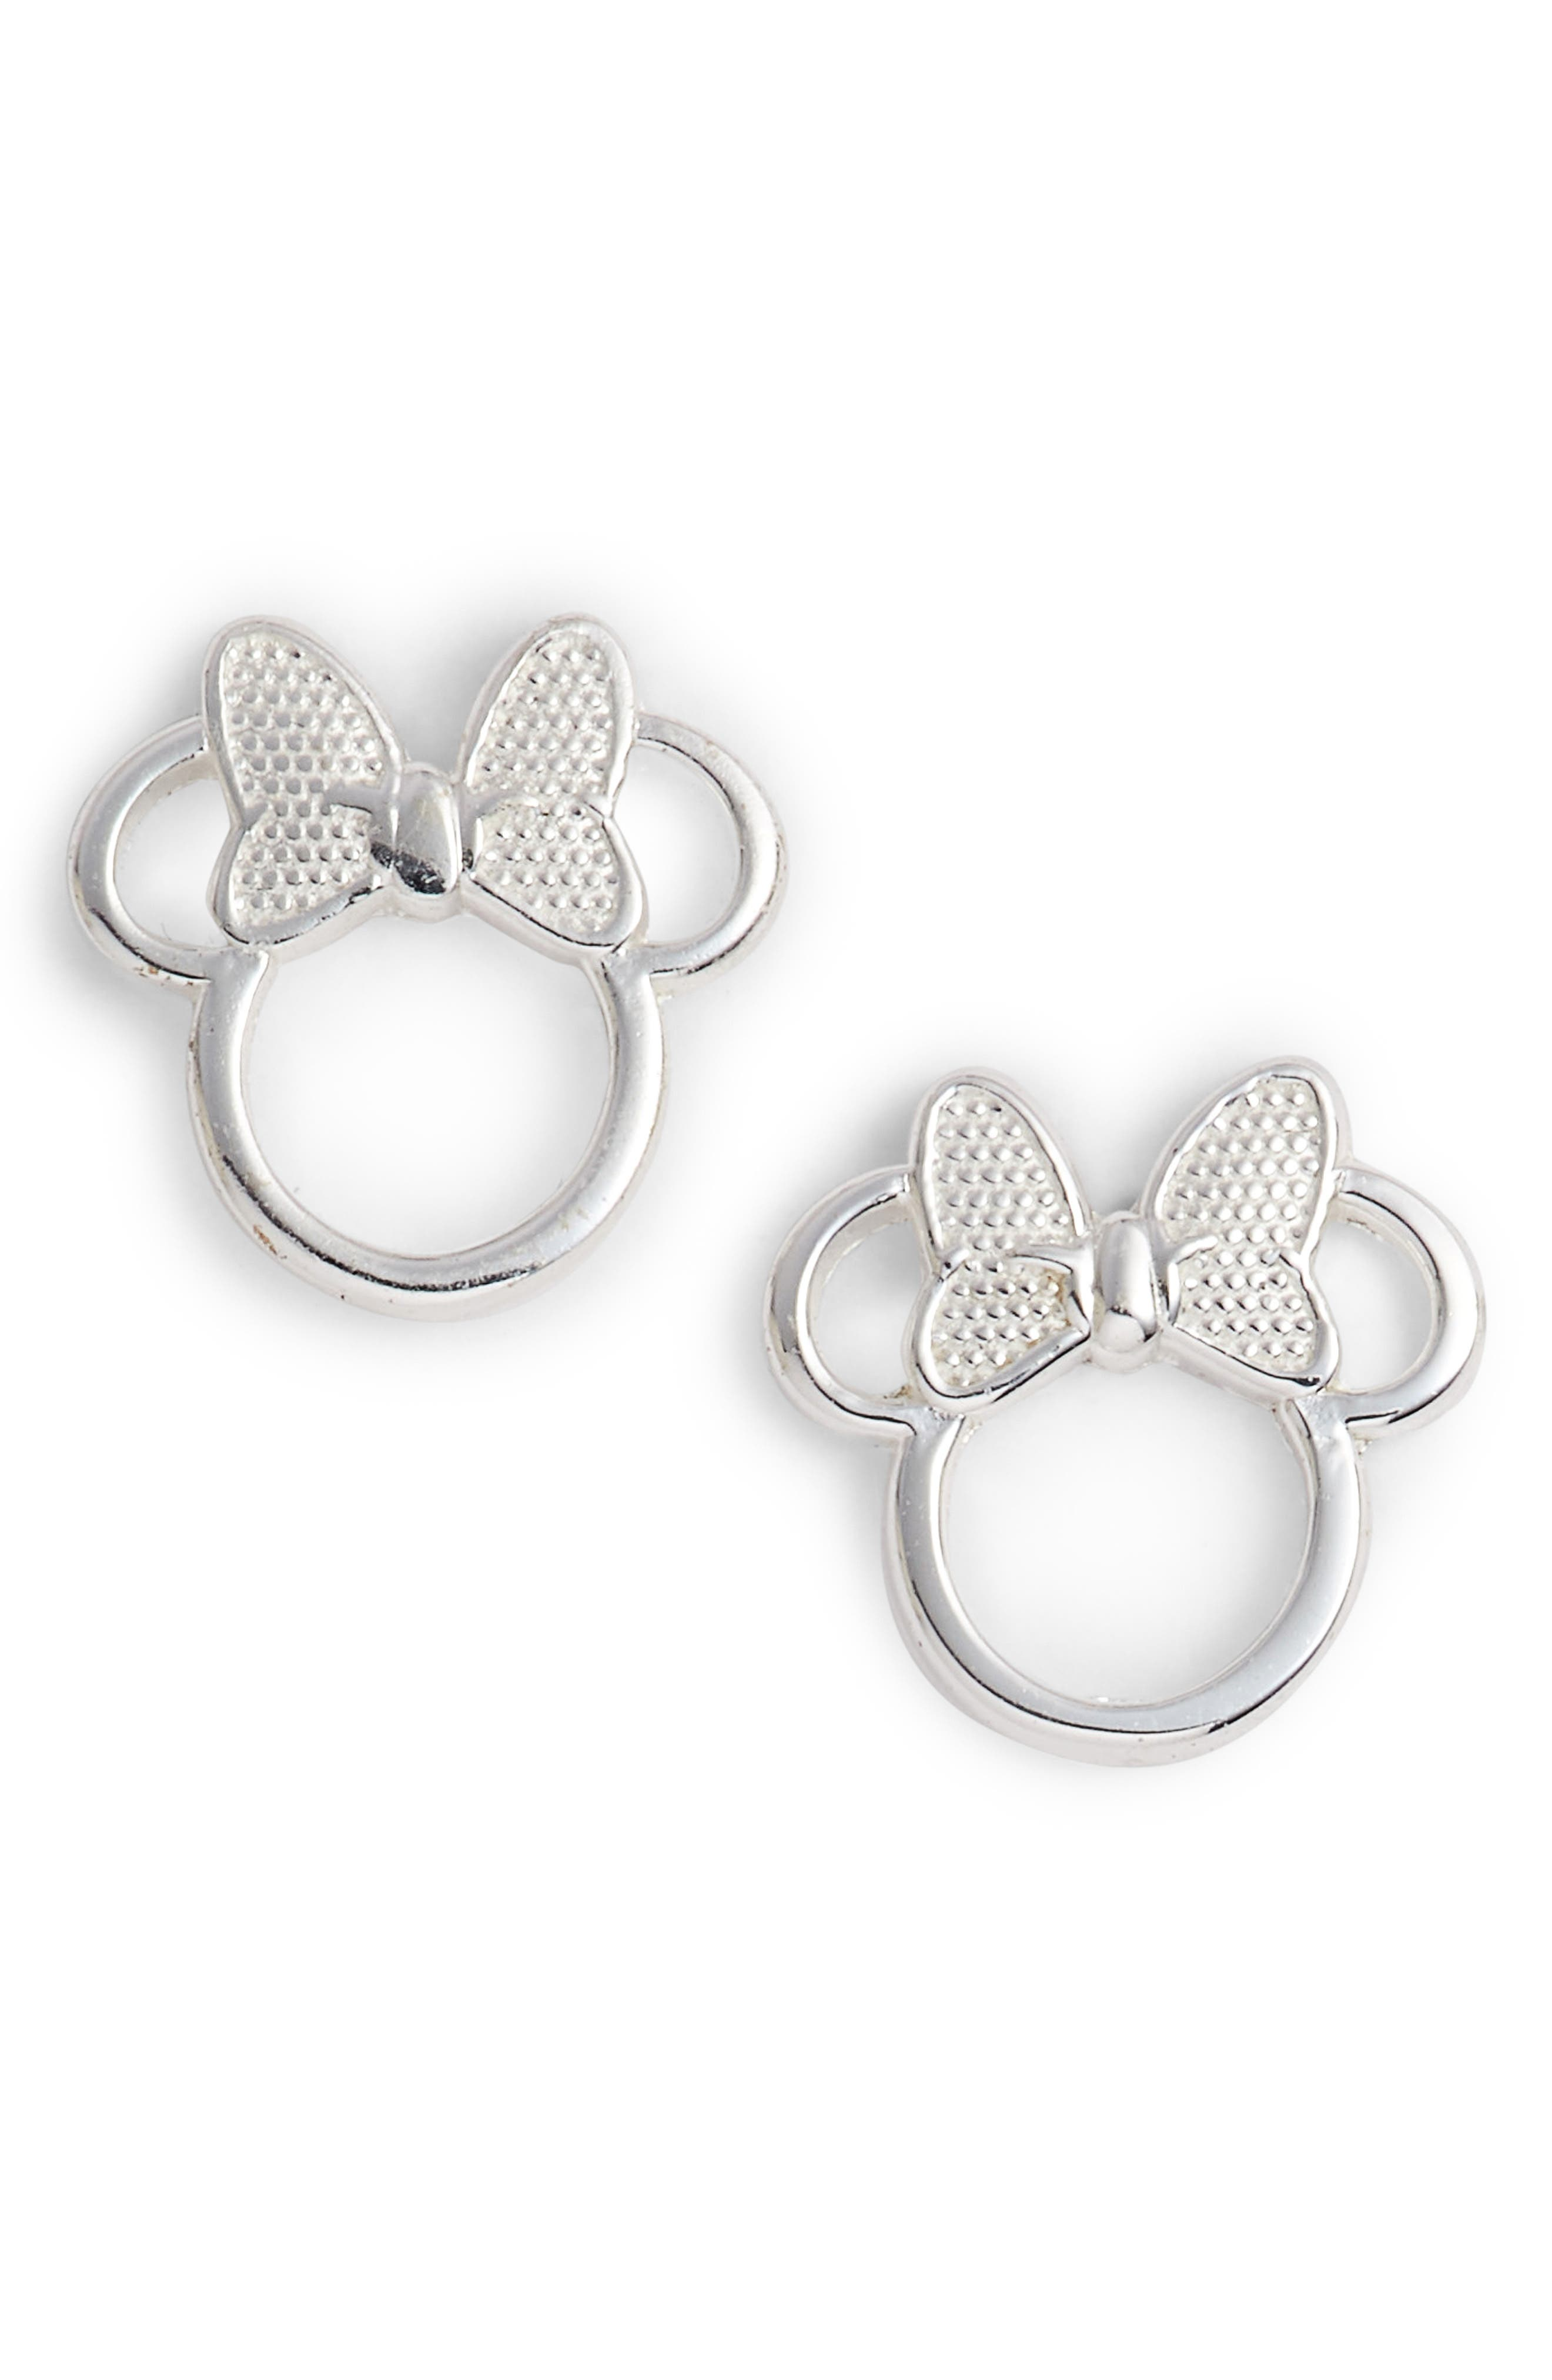 Minnie Mouse Stud Earrings,                         Main,                         color, Silver